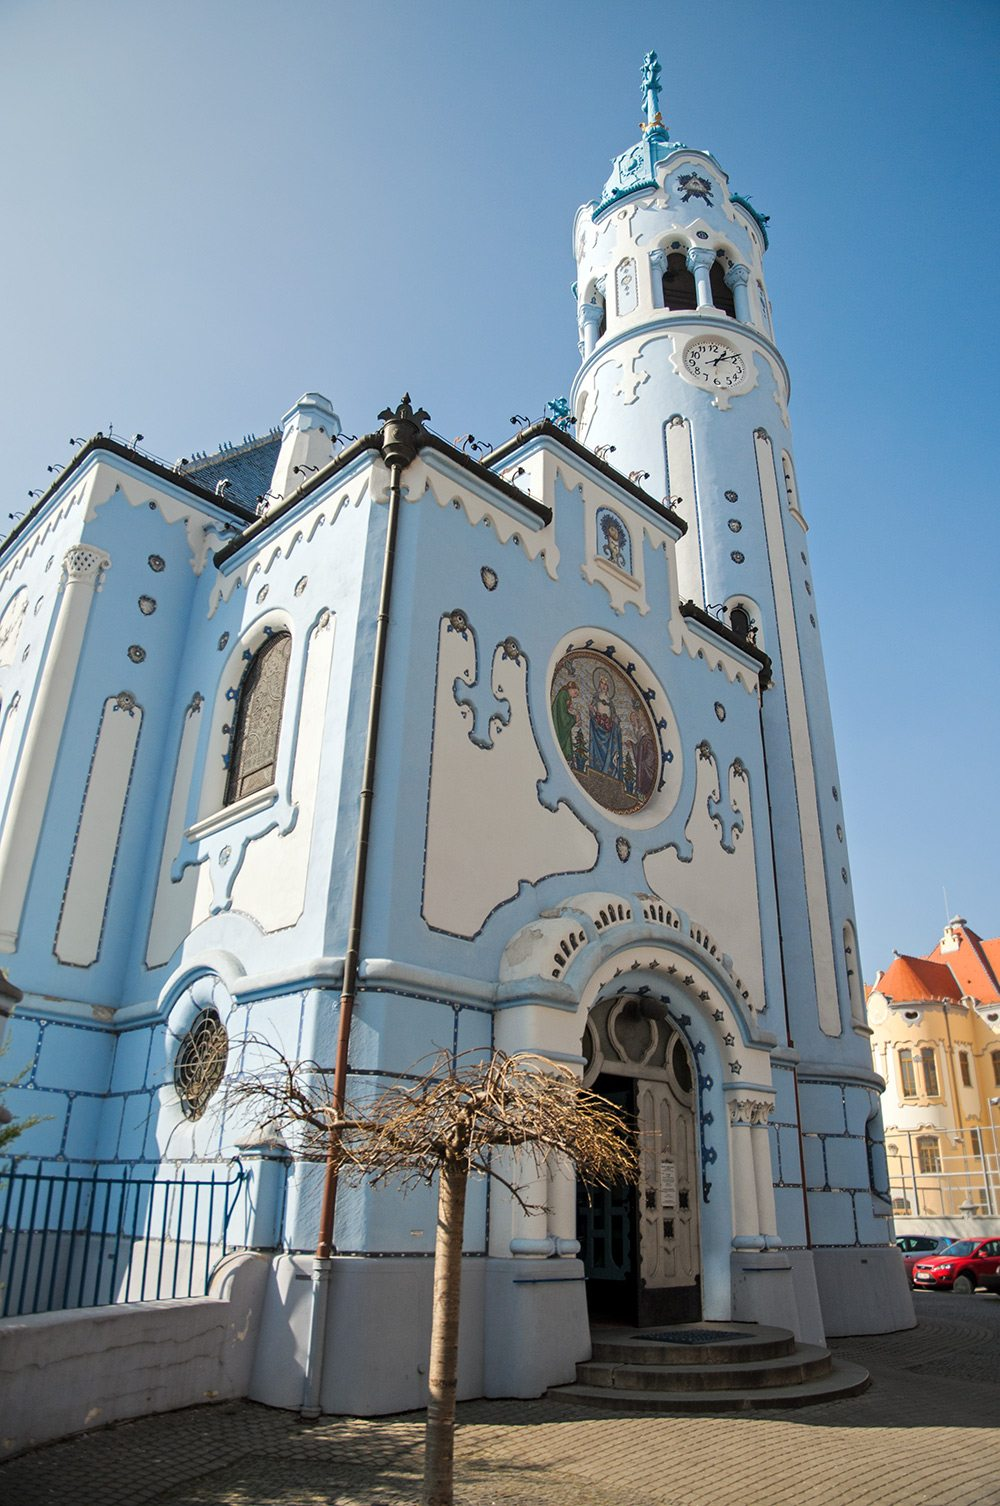 Kostol sv. Alžbety - The blue Church of St. Elisabeth